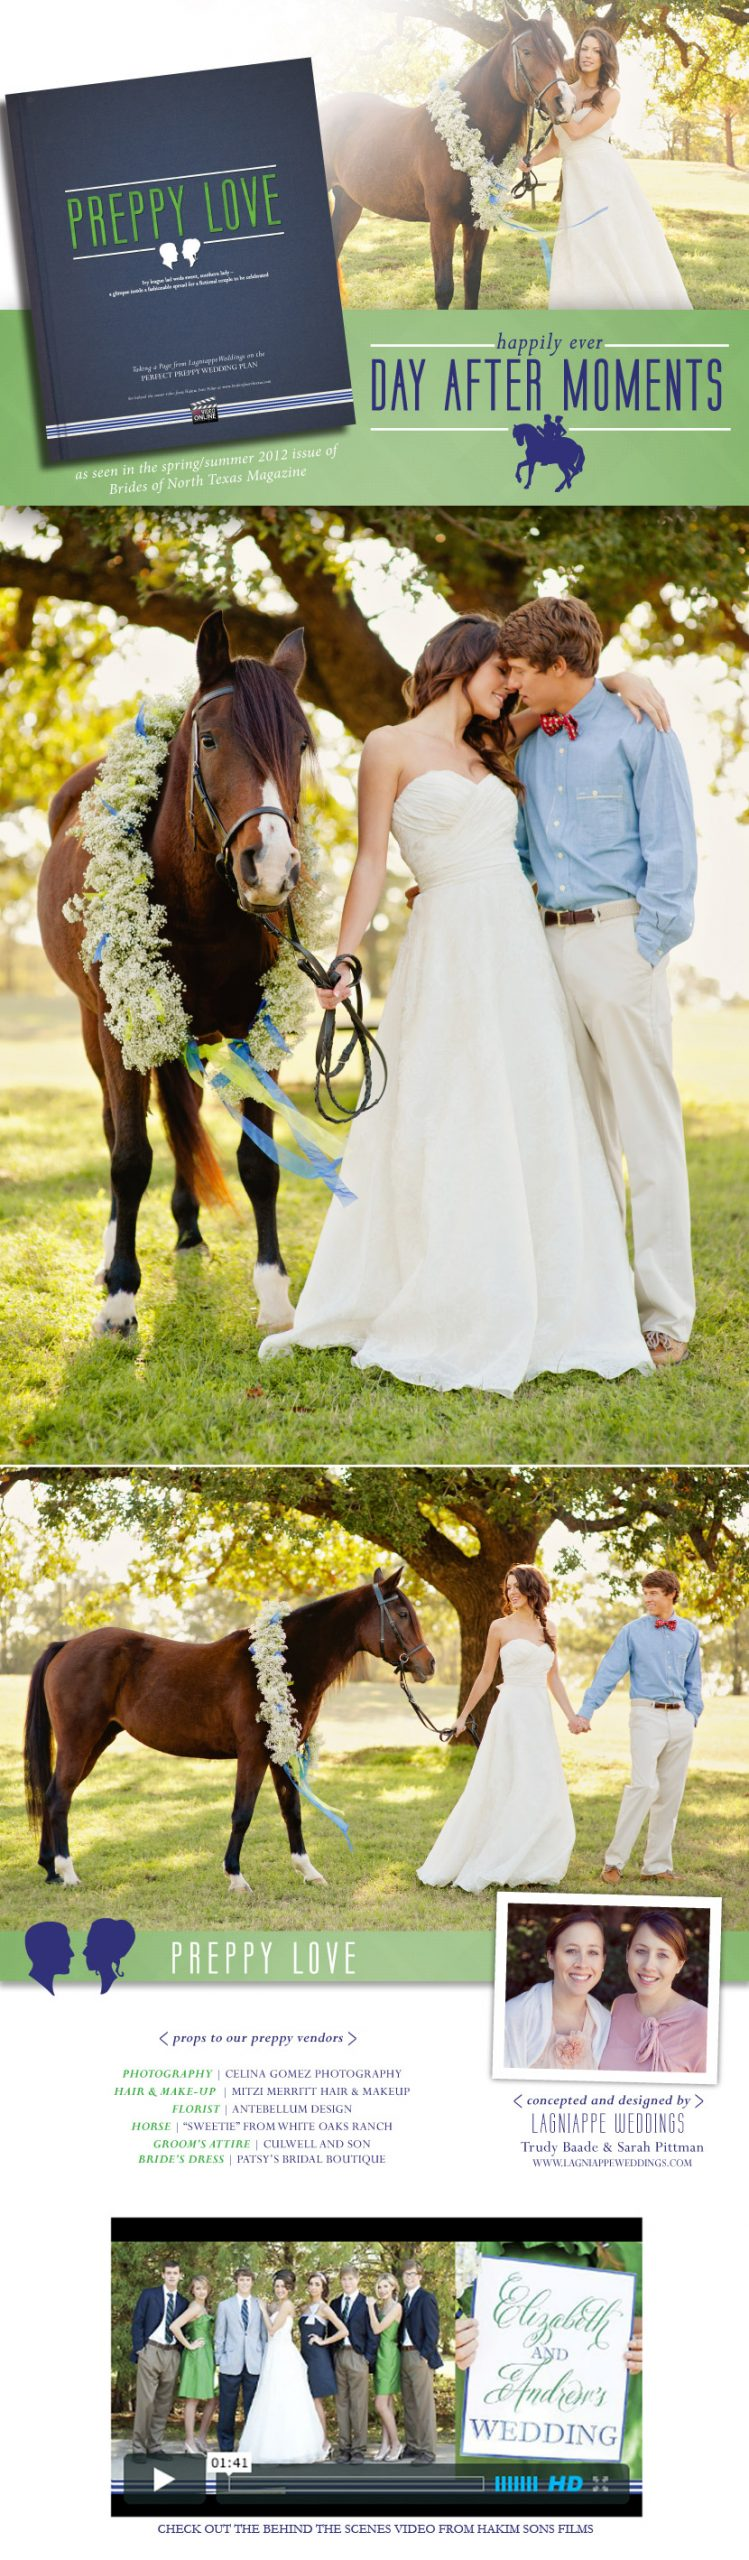 Preppy Love Part VI Happily Ever Day After Moments